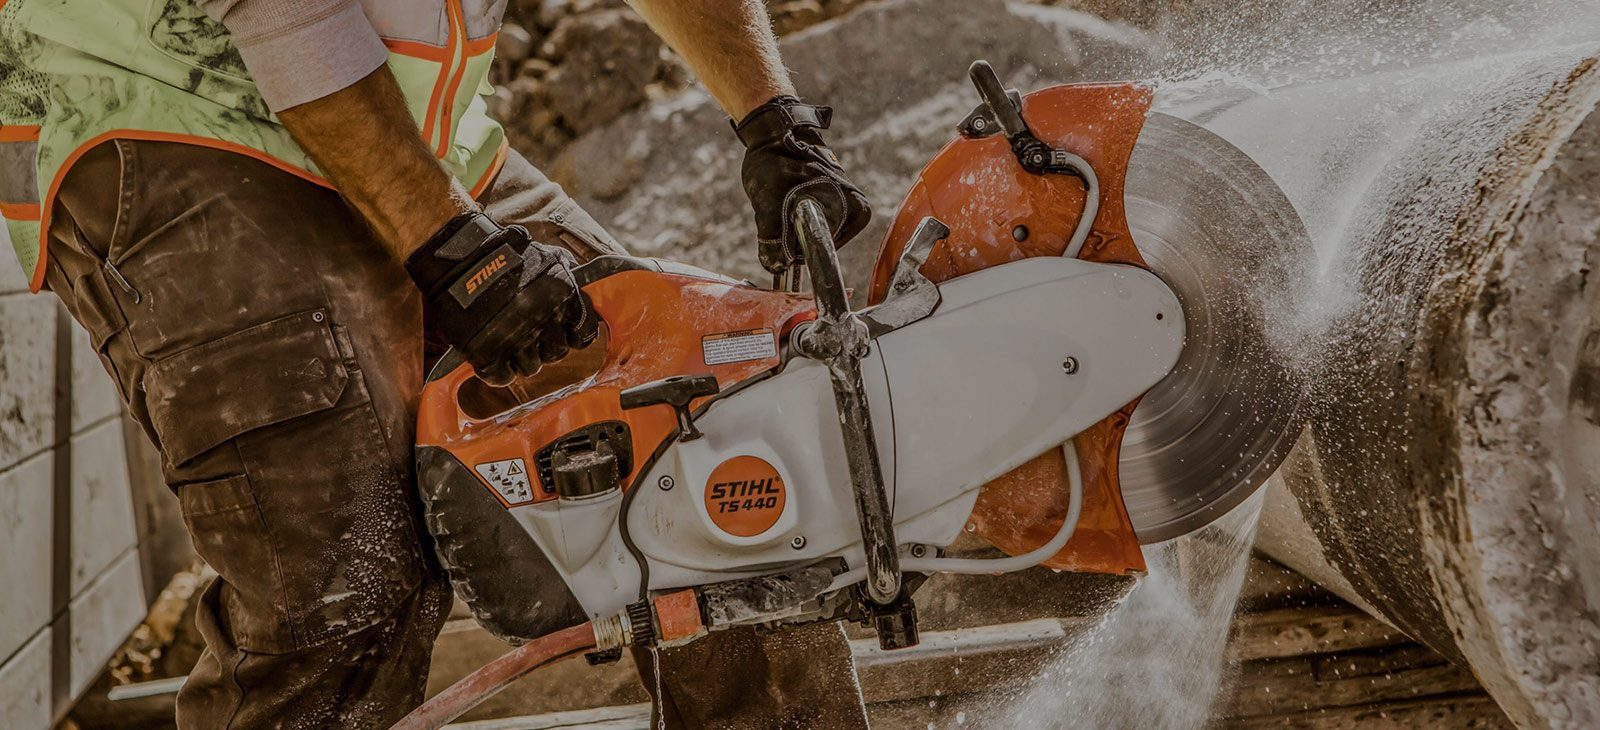 Stihl Dealers For<br /> Pro / Domestic Garden & Power Tools